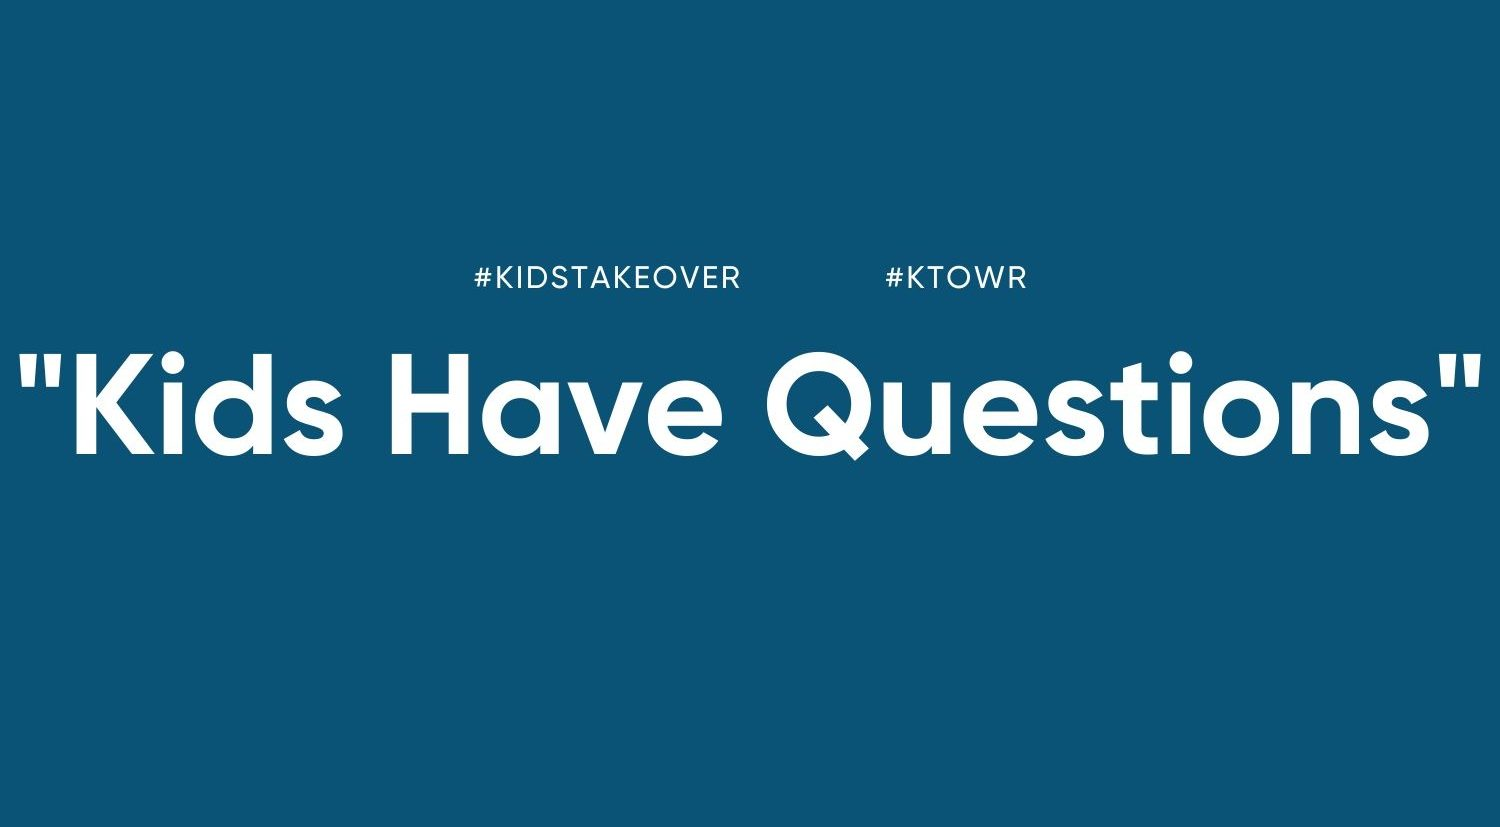 kids have questions background image